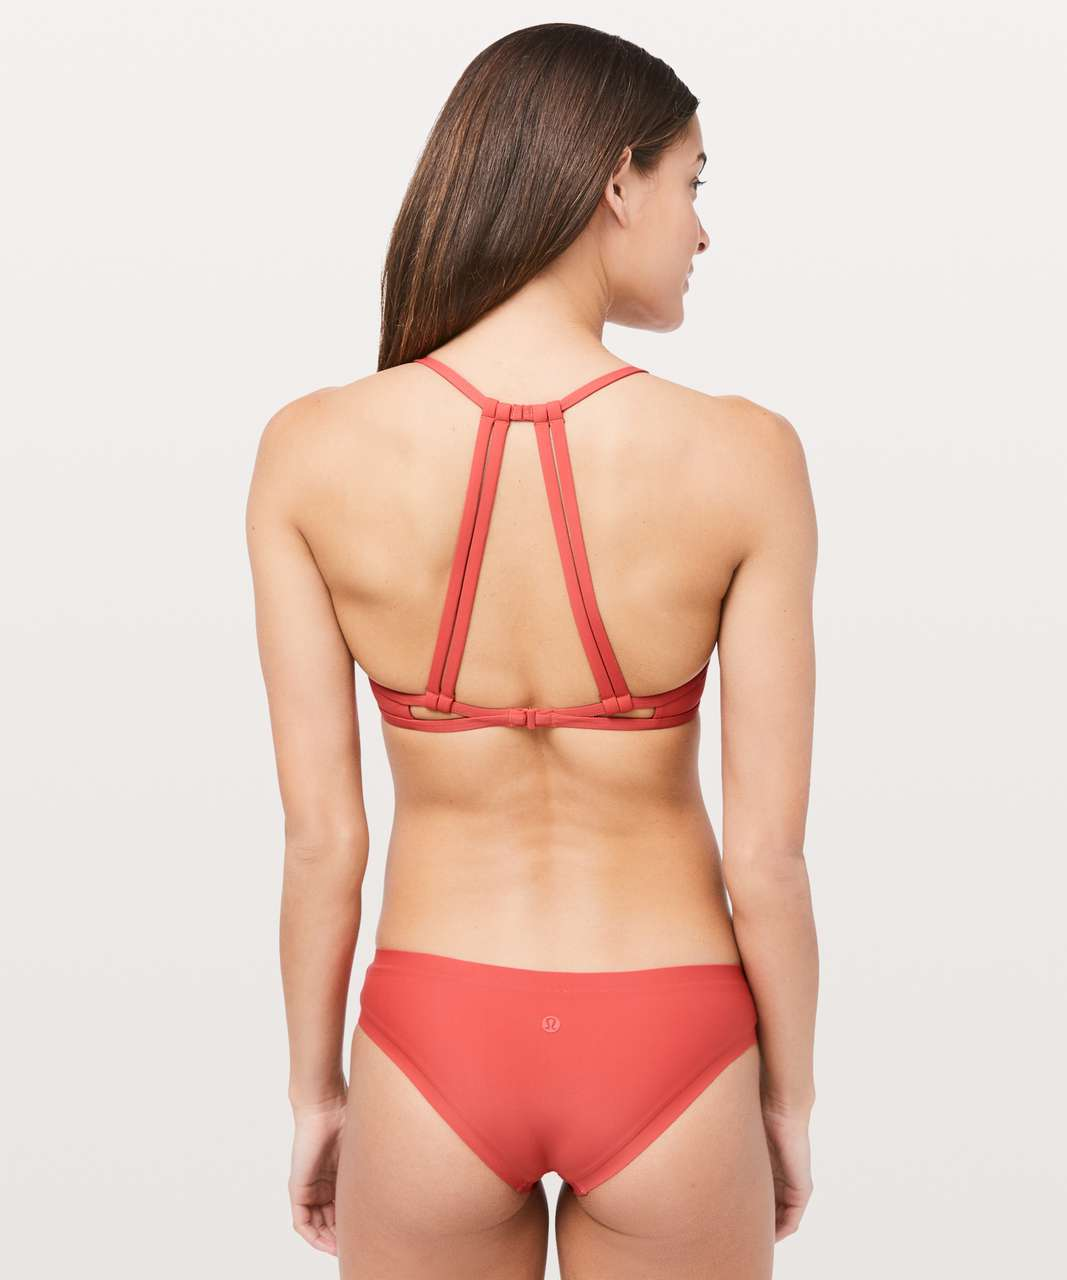 Lululemon See The Sea Swim Top - Poppy Coral